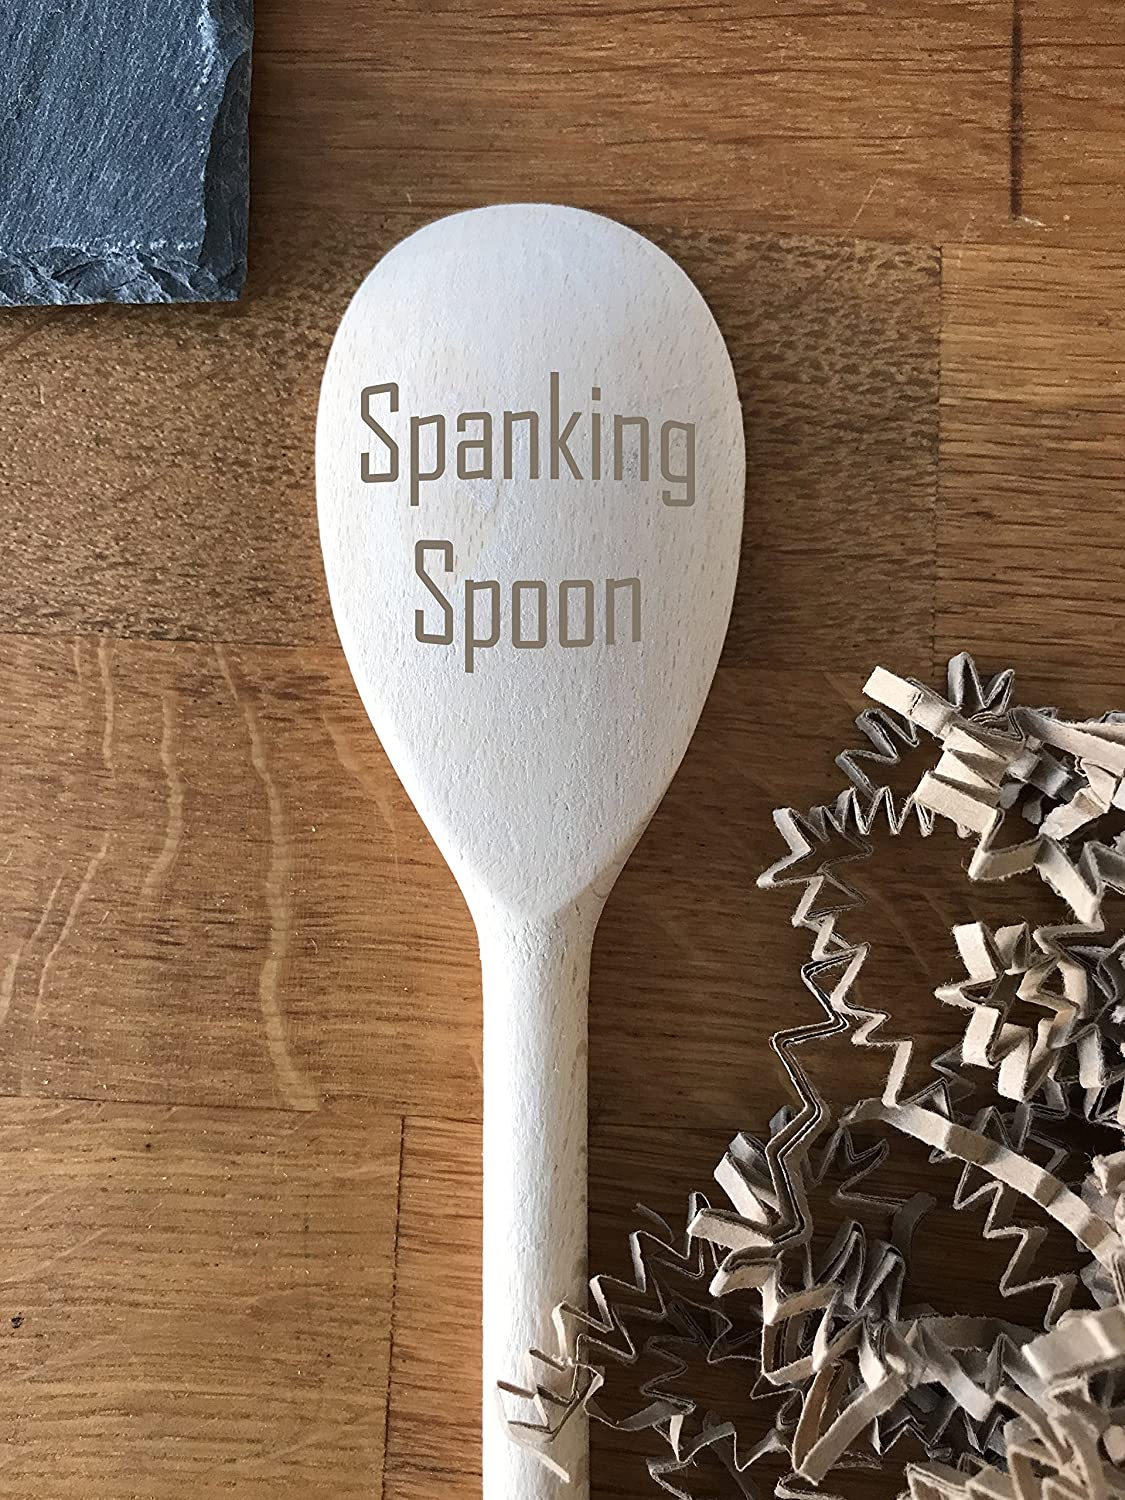 Spanking Spoon Engraved Wooden Spoon Cooking Spoon Can Be Used As A Keepsake Or As A Cooking Implement